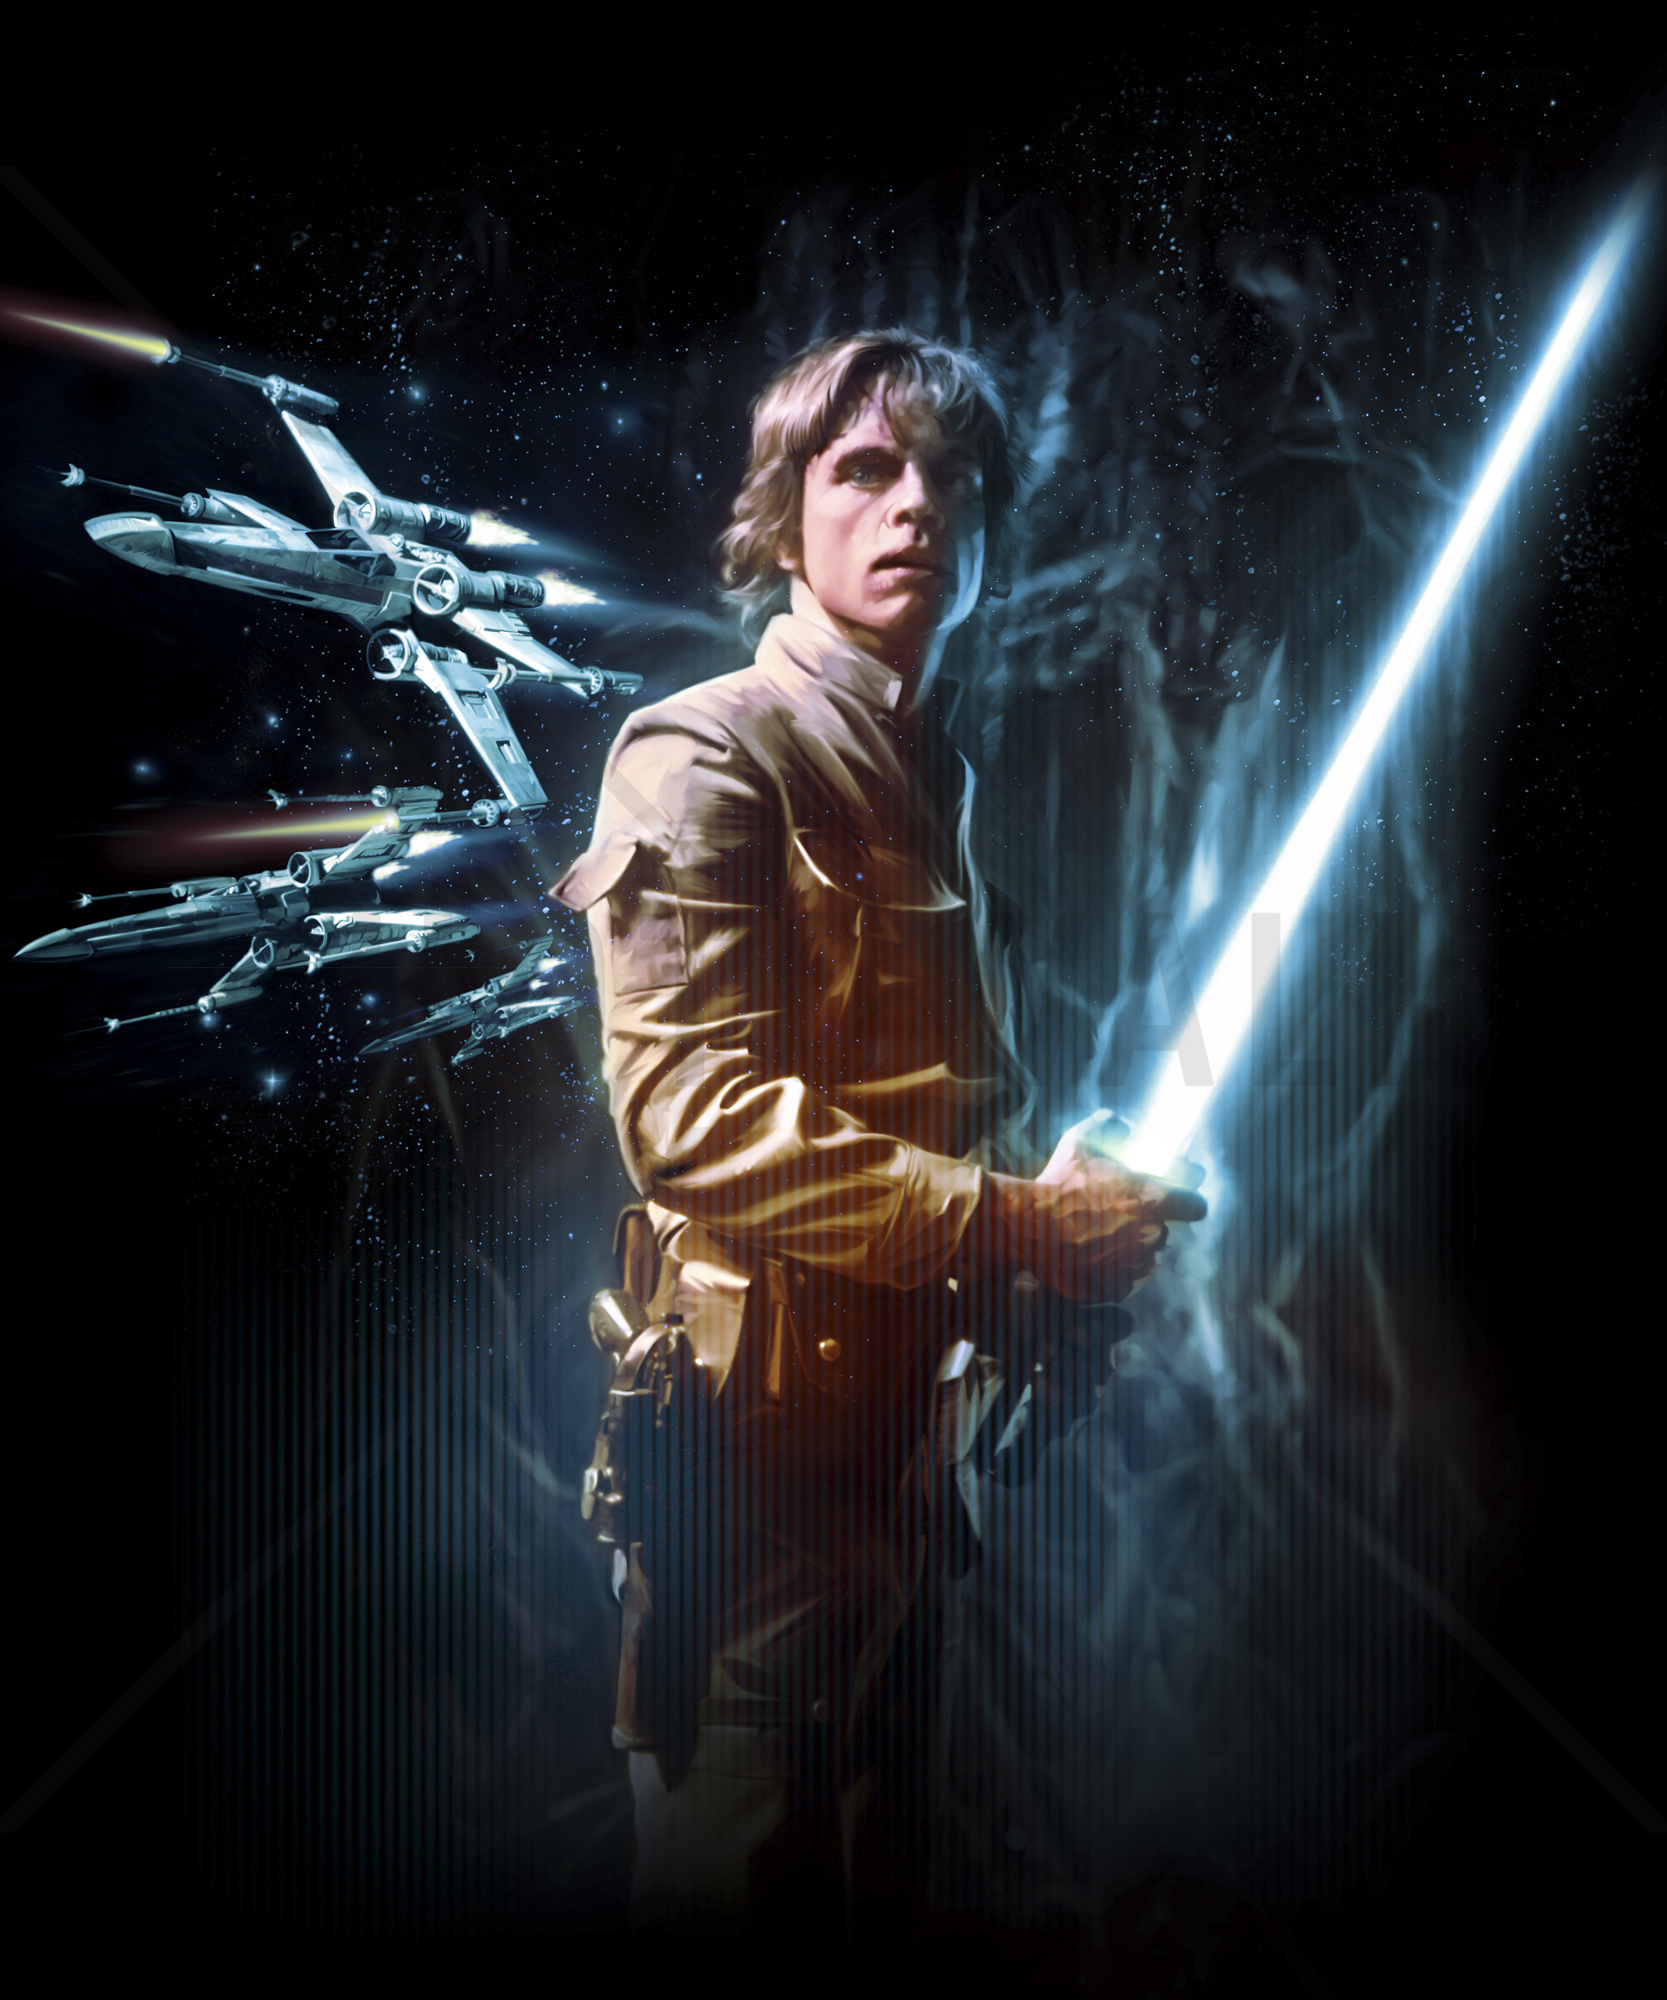 luke skywalker cool hd wallpapers   Awswallpapershdcom 1667x2000